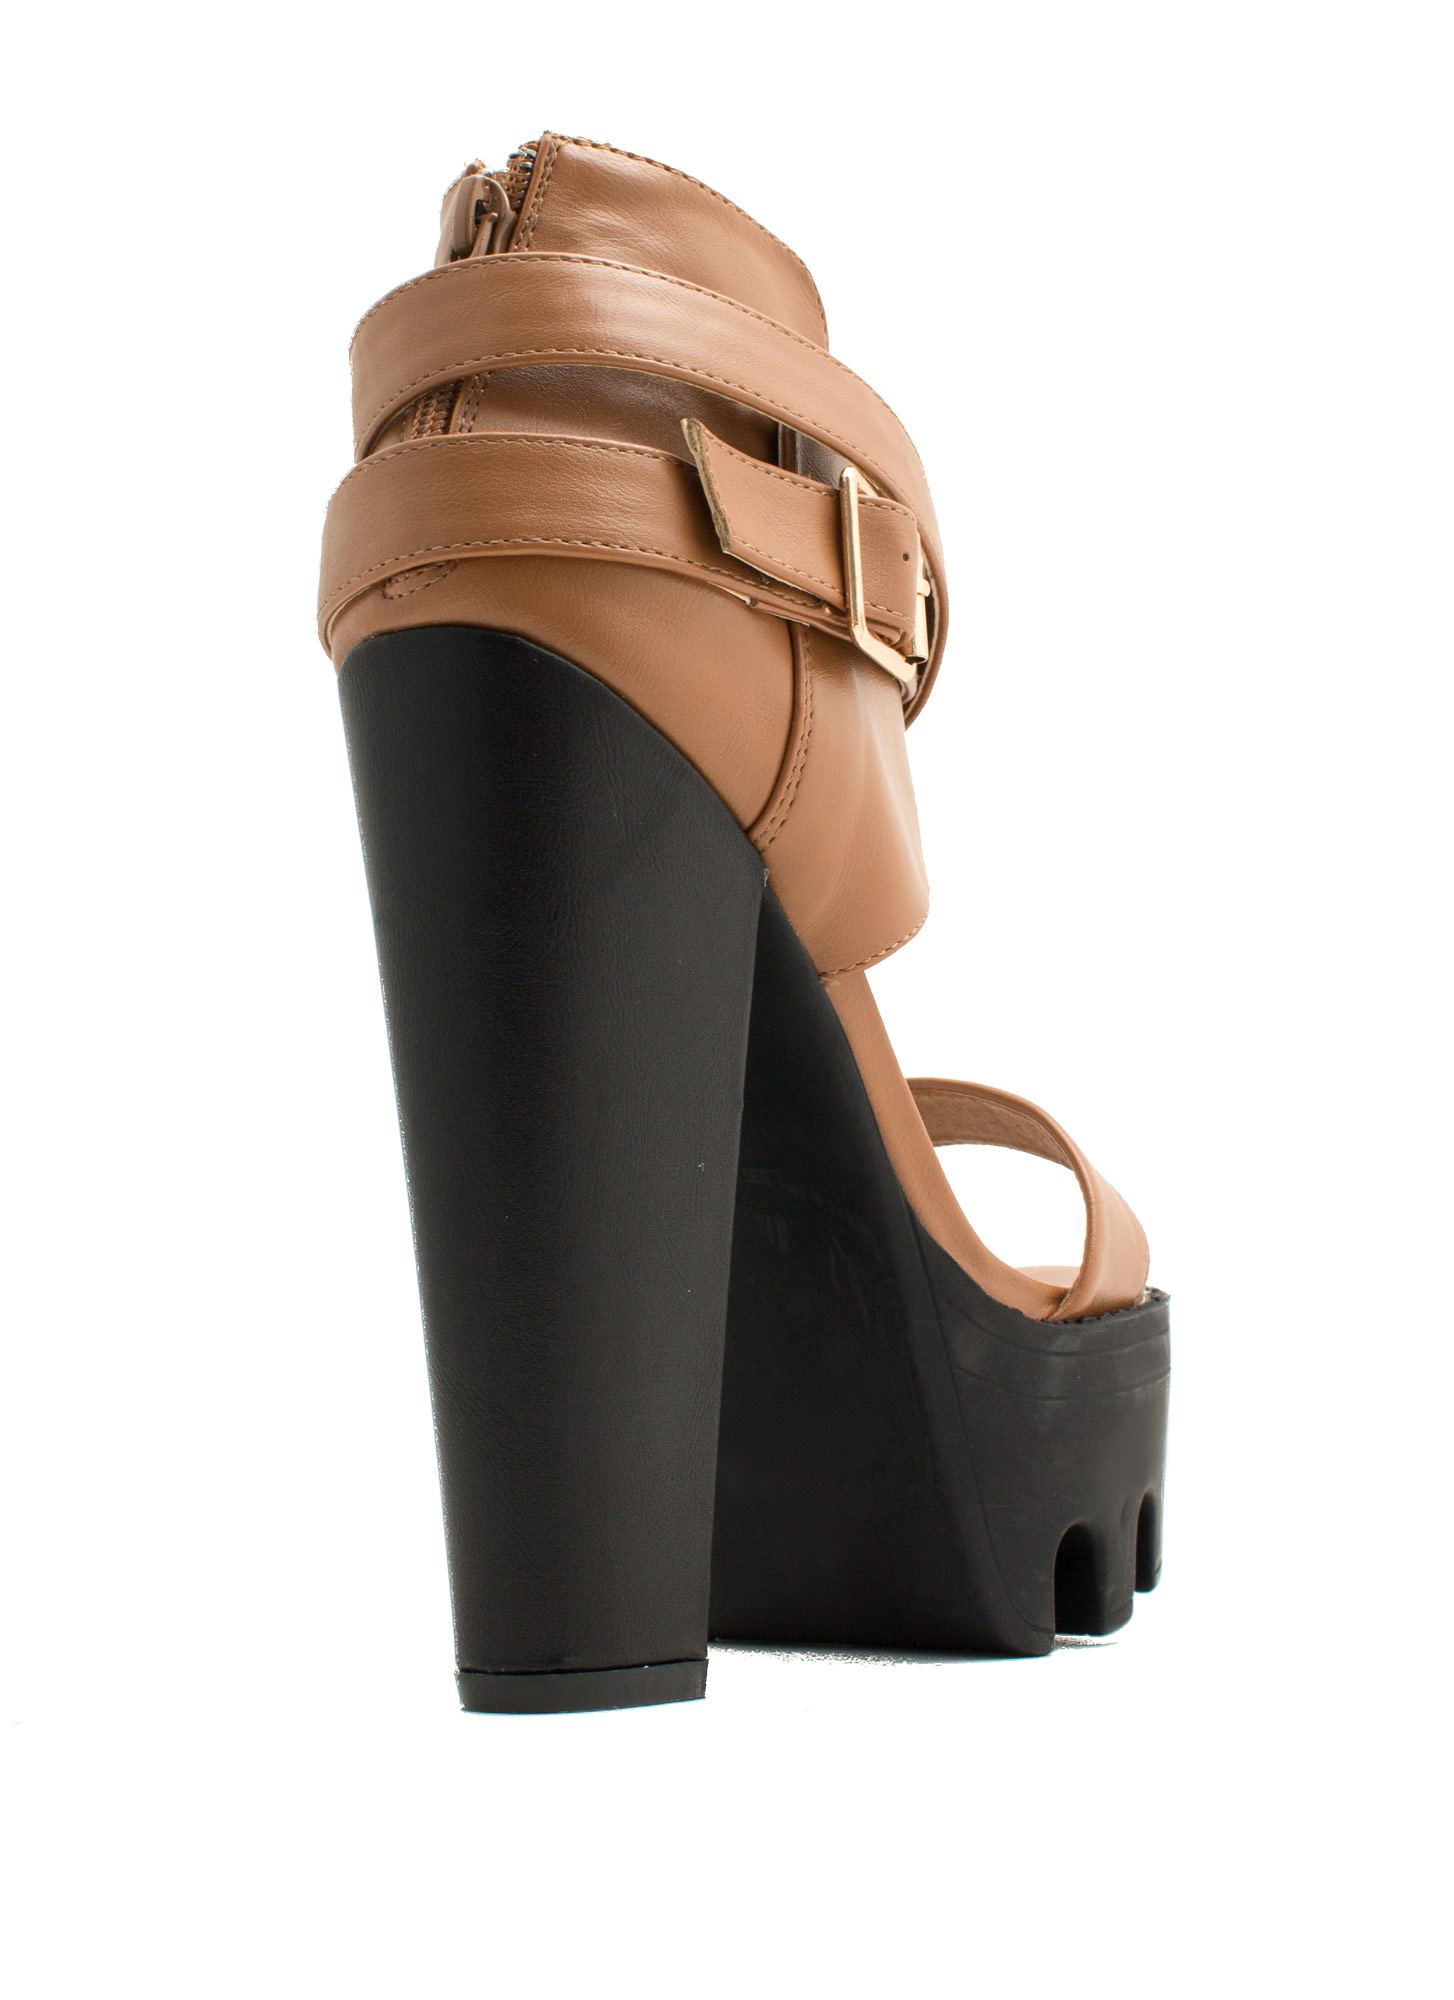 Rugged N Chic Single-Strap Heels WHISKY